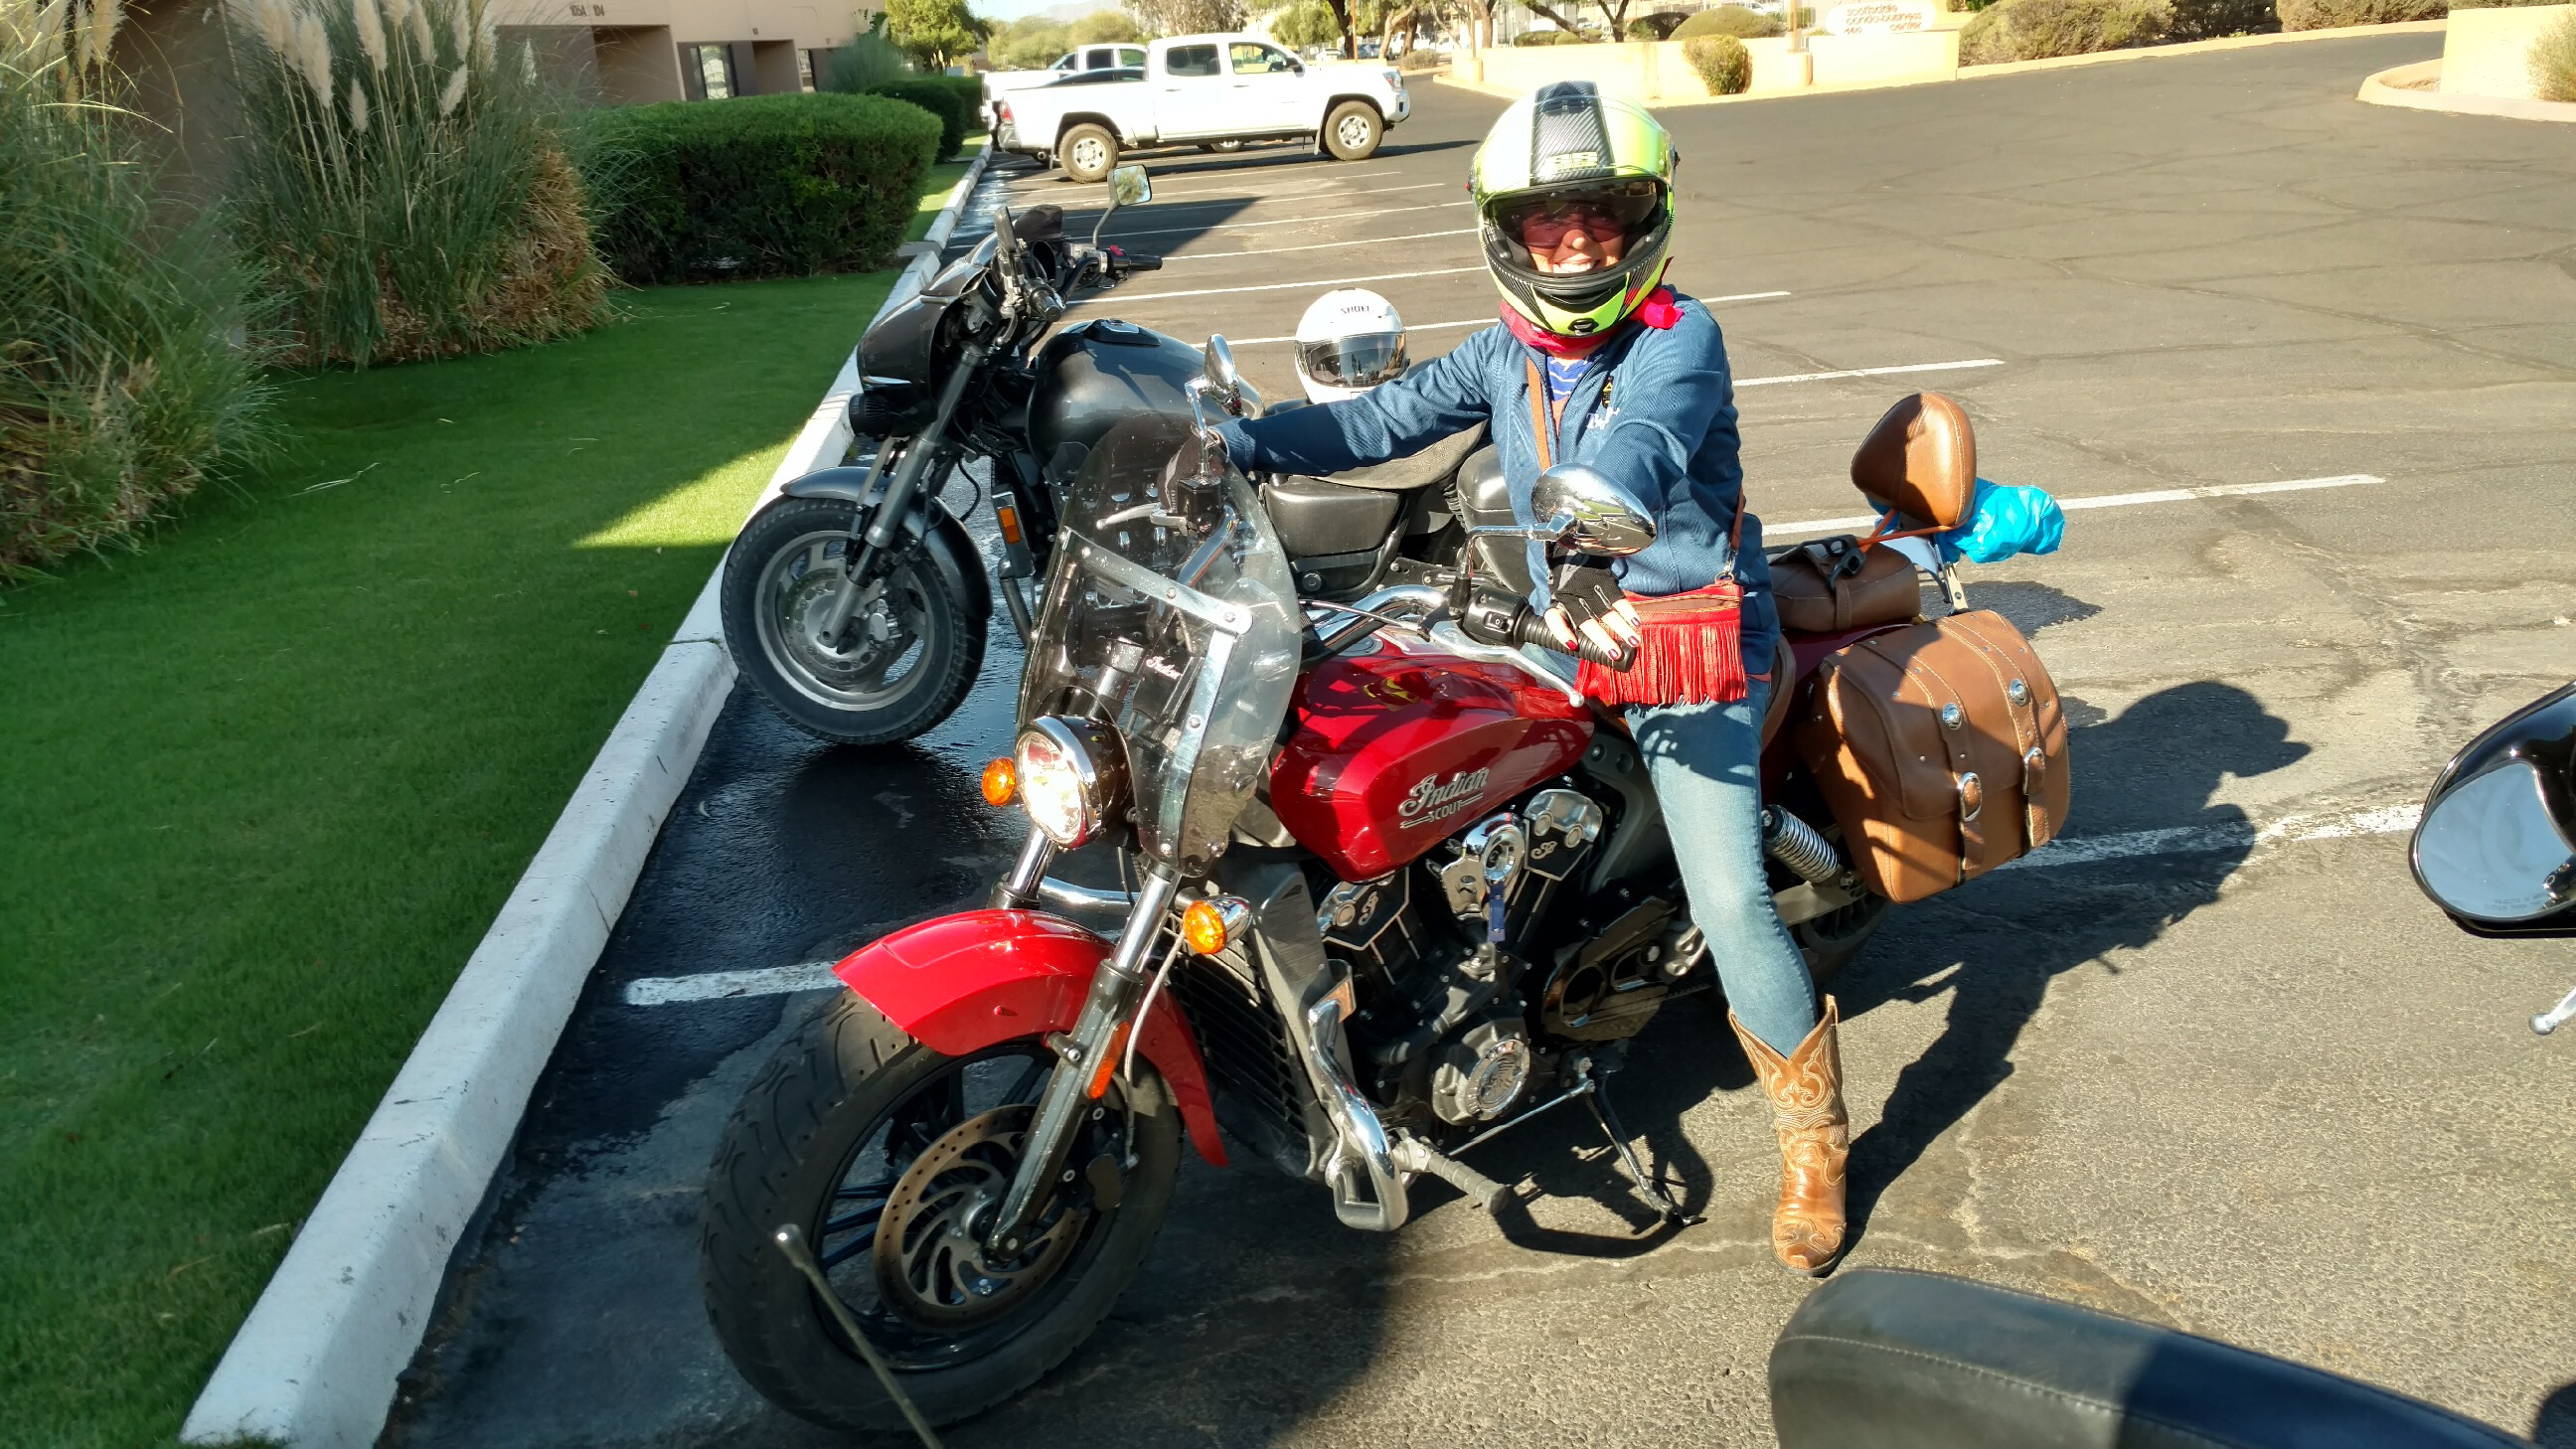 Laura Biddle riding her motorcycle